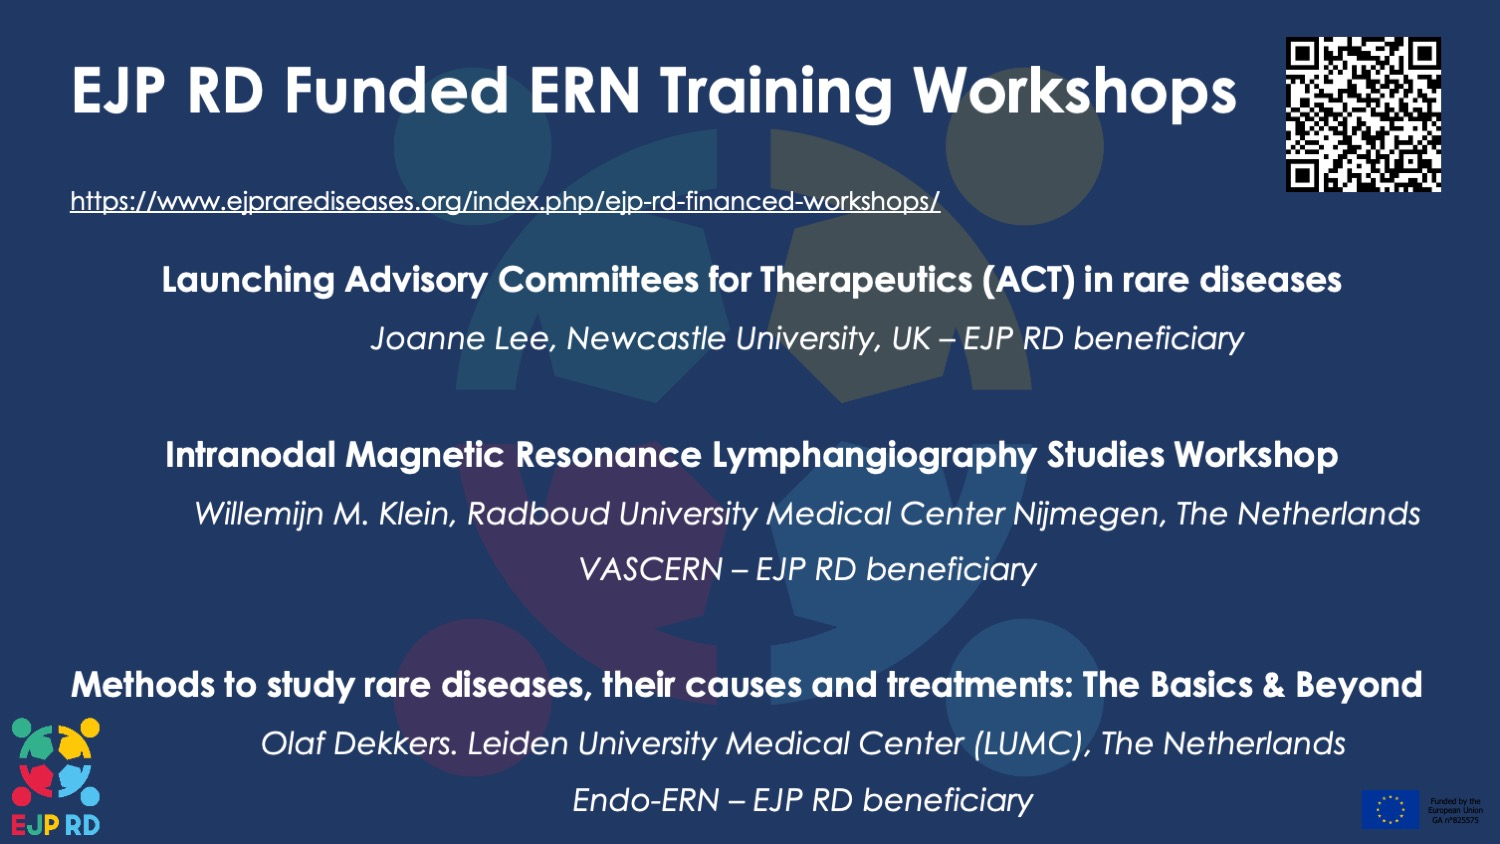 VASCERN member's proposal selected for funding in first EJP RD Research Training Workshop Call!